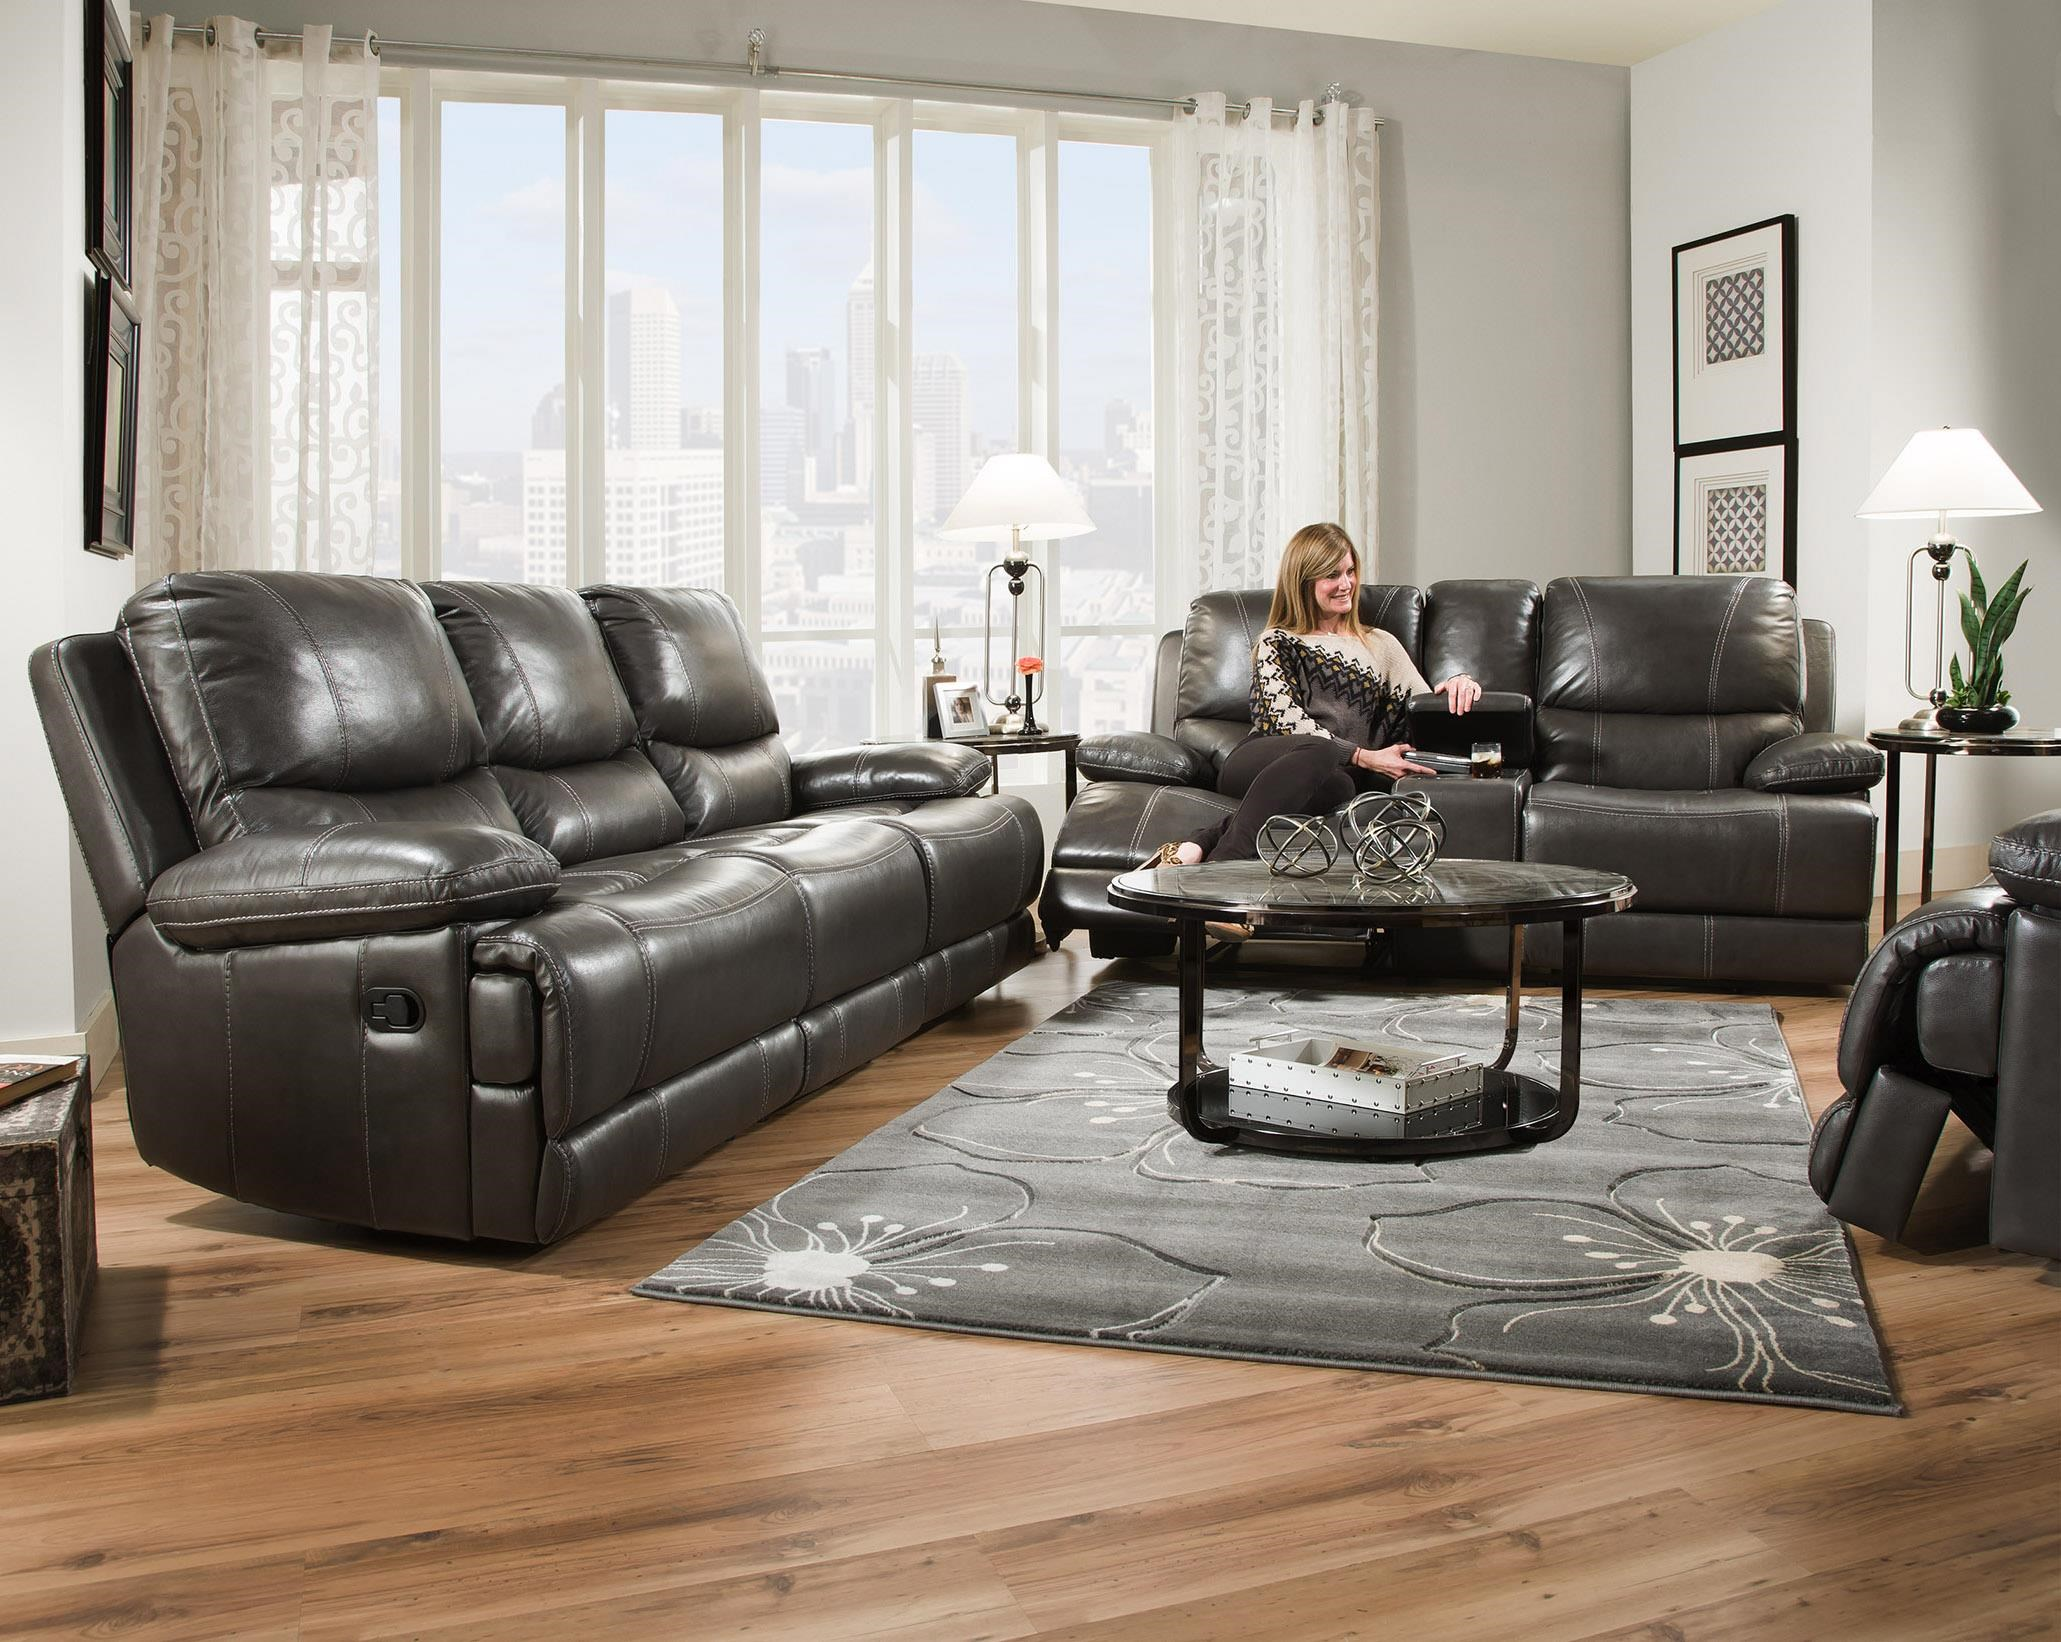 Sofa Mart Rapid City Sd Latest Designs Ideas Pictures